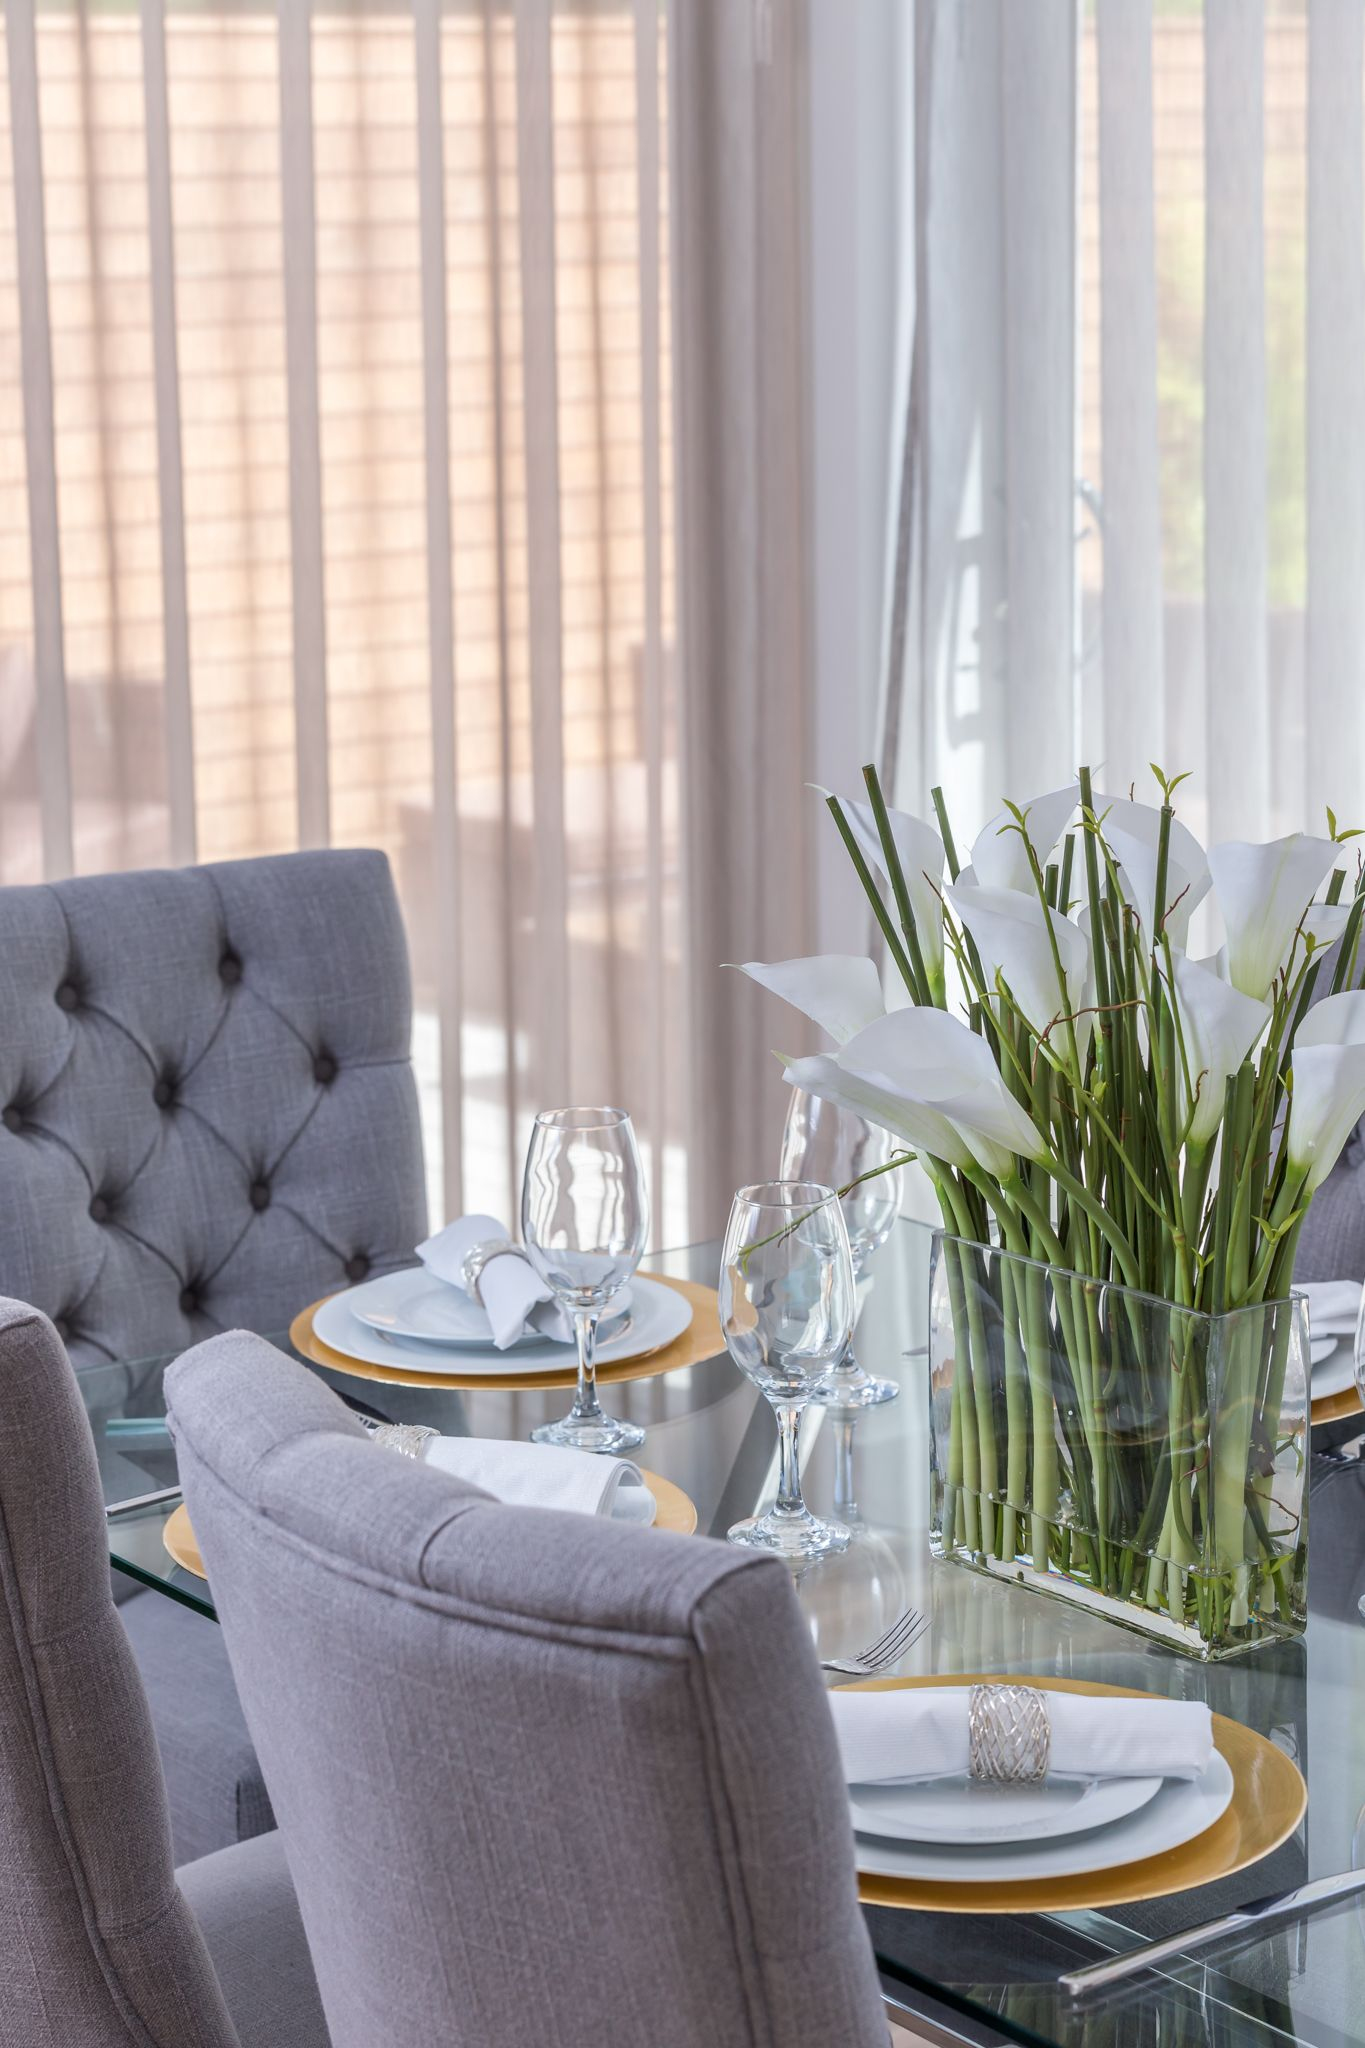 Styling By Smb Interior Design Bournemouth Furnishings From Www